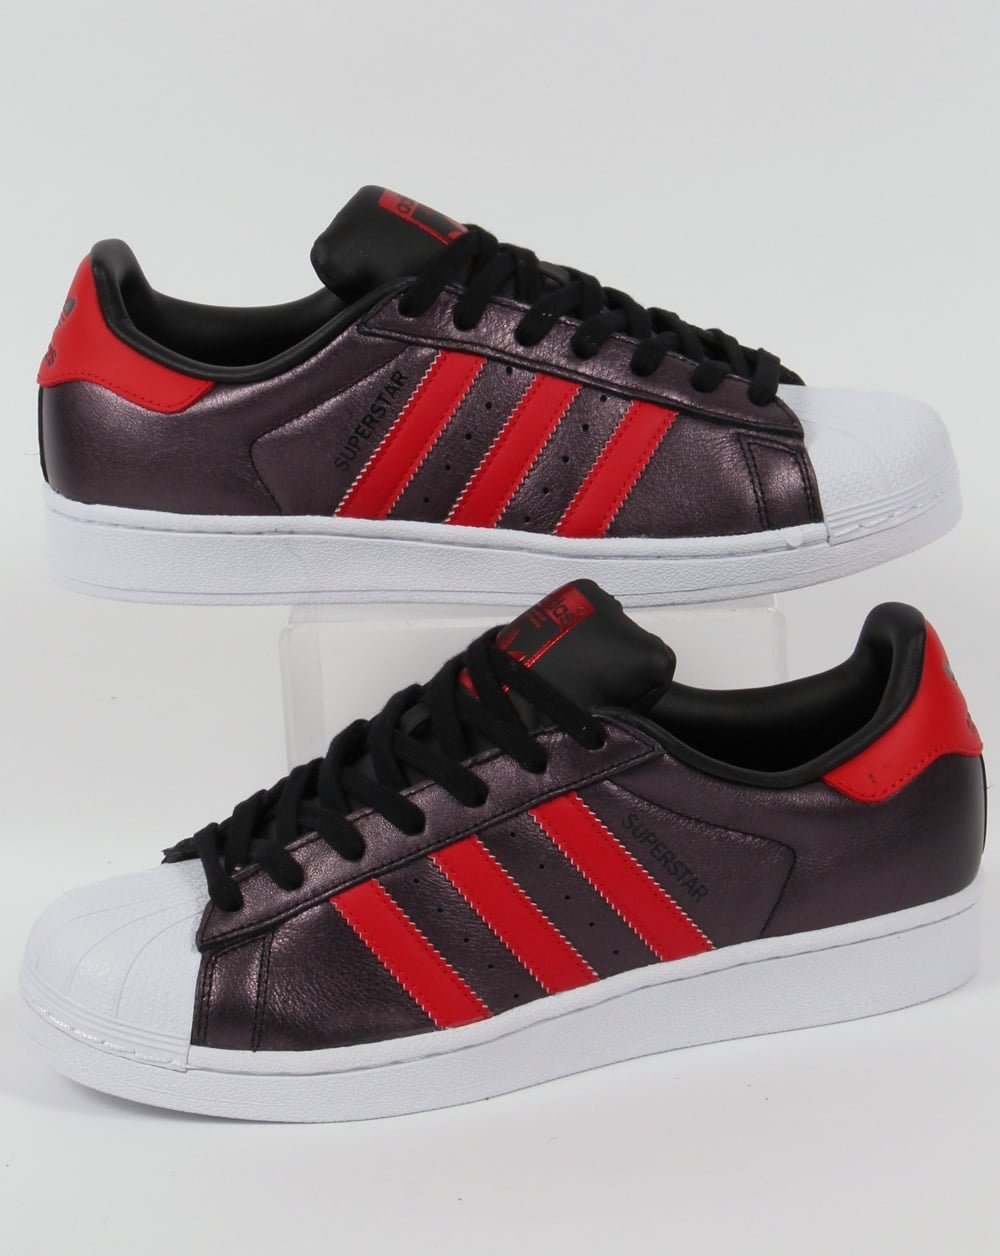 new arrival f48aa cd09f adidas Trainers Adidas Superstar Trainers Black Red